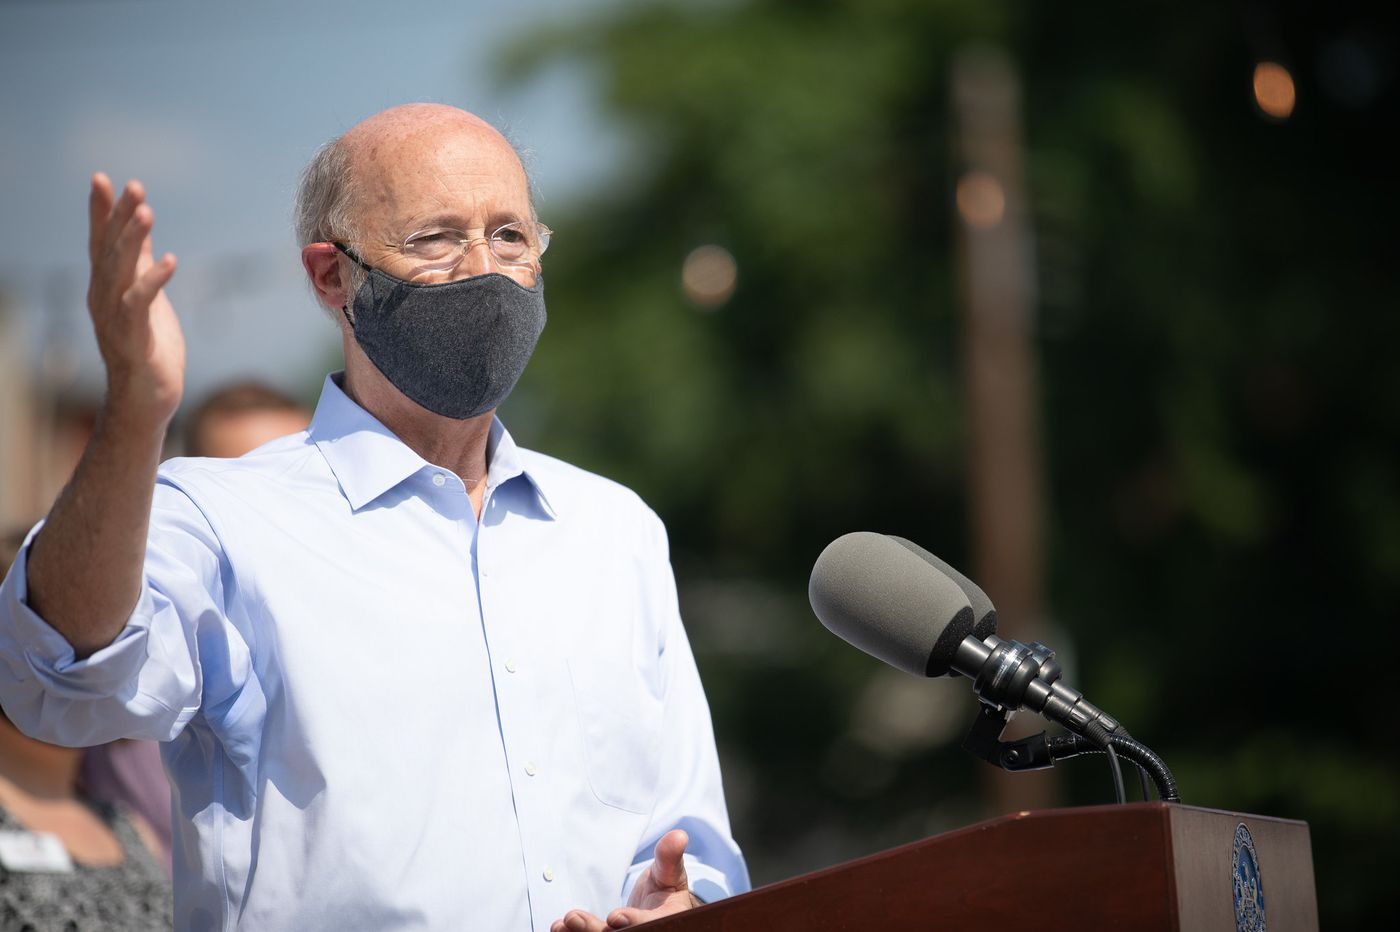 Governor Wolf has a choice to make about climate change | Opinion